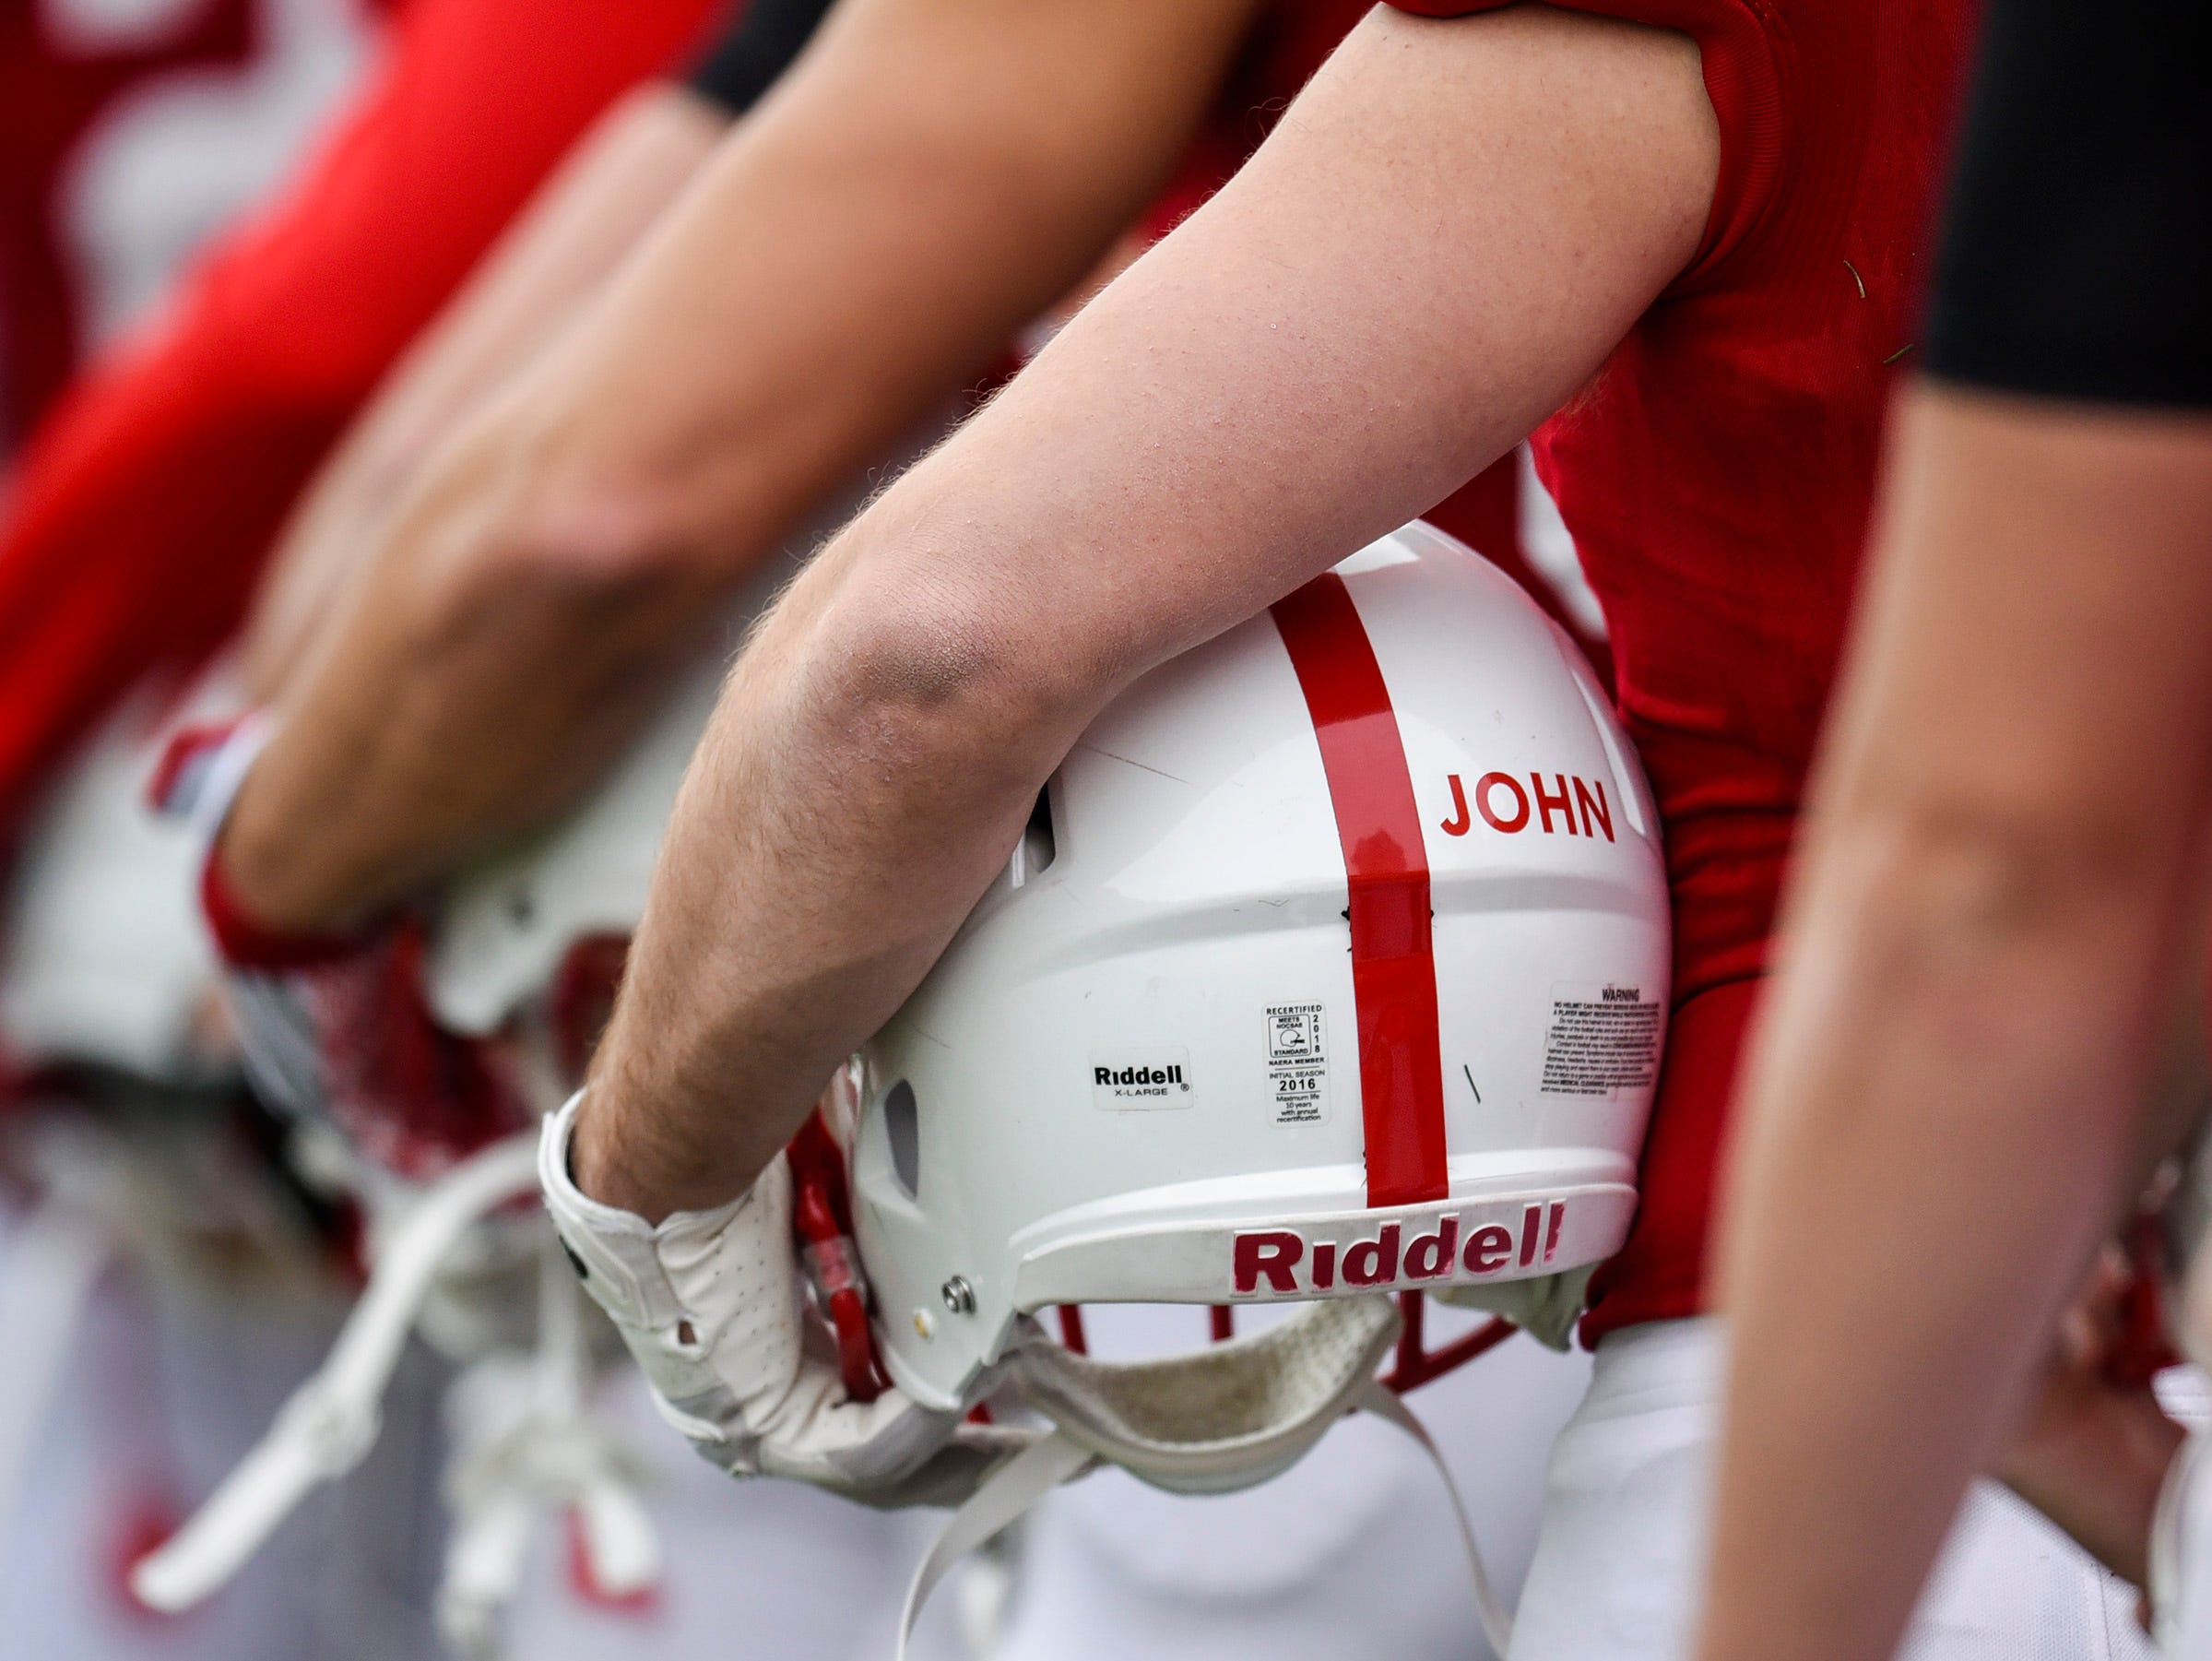 """St. John's football players remember coach John Gagliardi with """"John"""" on the back of their helmets Saturday, Oct. 13, in Collegeville."""